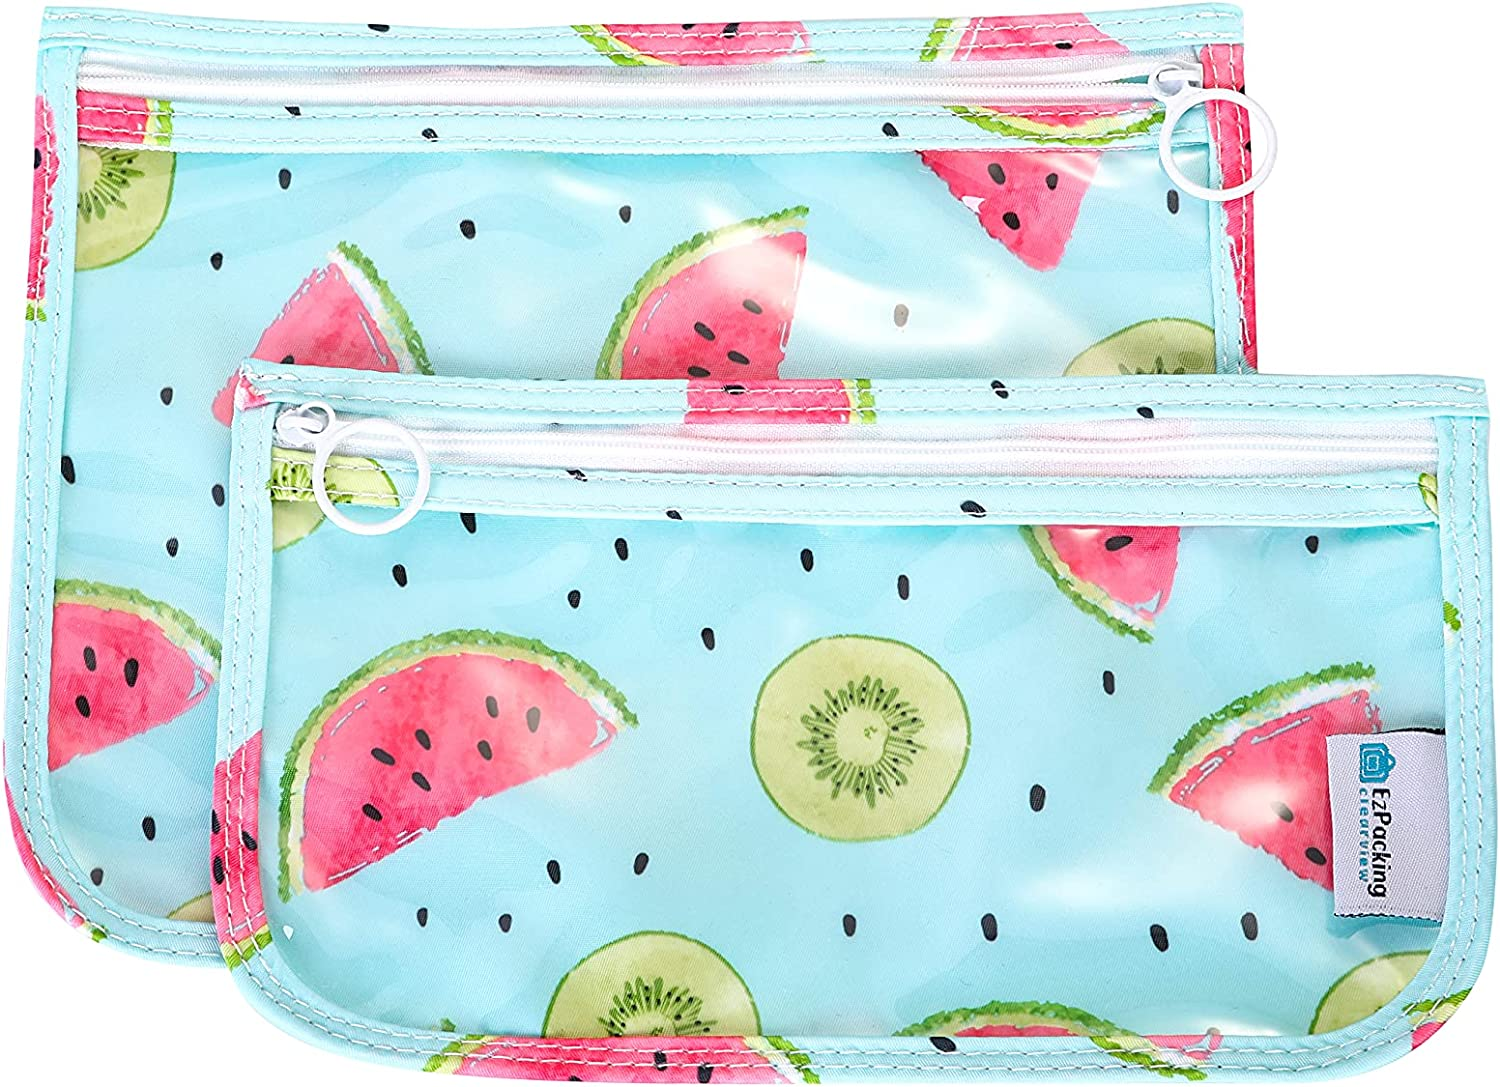 Aesthetic Clear Zipper Pouches (Set of 2) / Transparent Reusable PVC Organizers for Women's Purse or Baby Diaper Bag / Cute Slim Flat Japanese Style Watermelon Cactus Pencil Pouch for School or Travel (Watermelon)